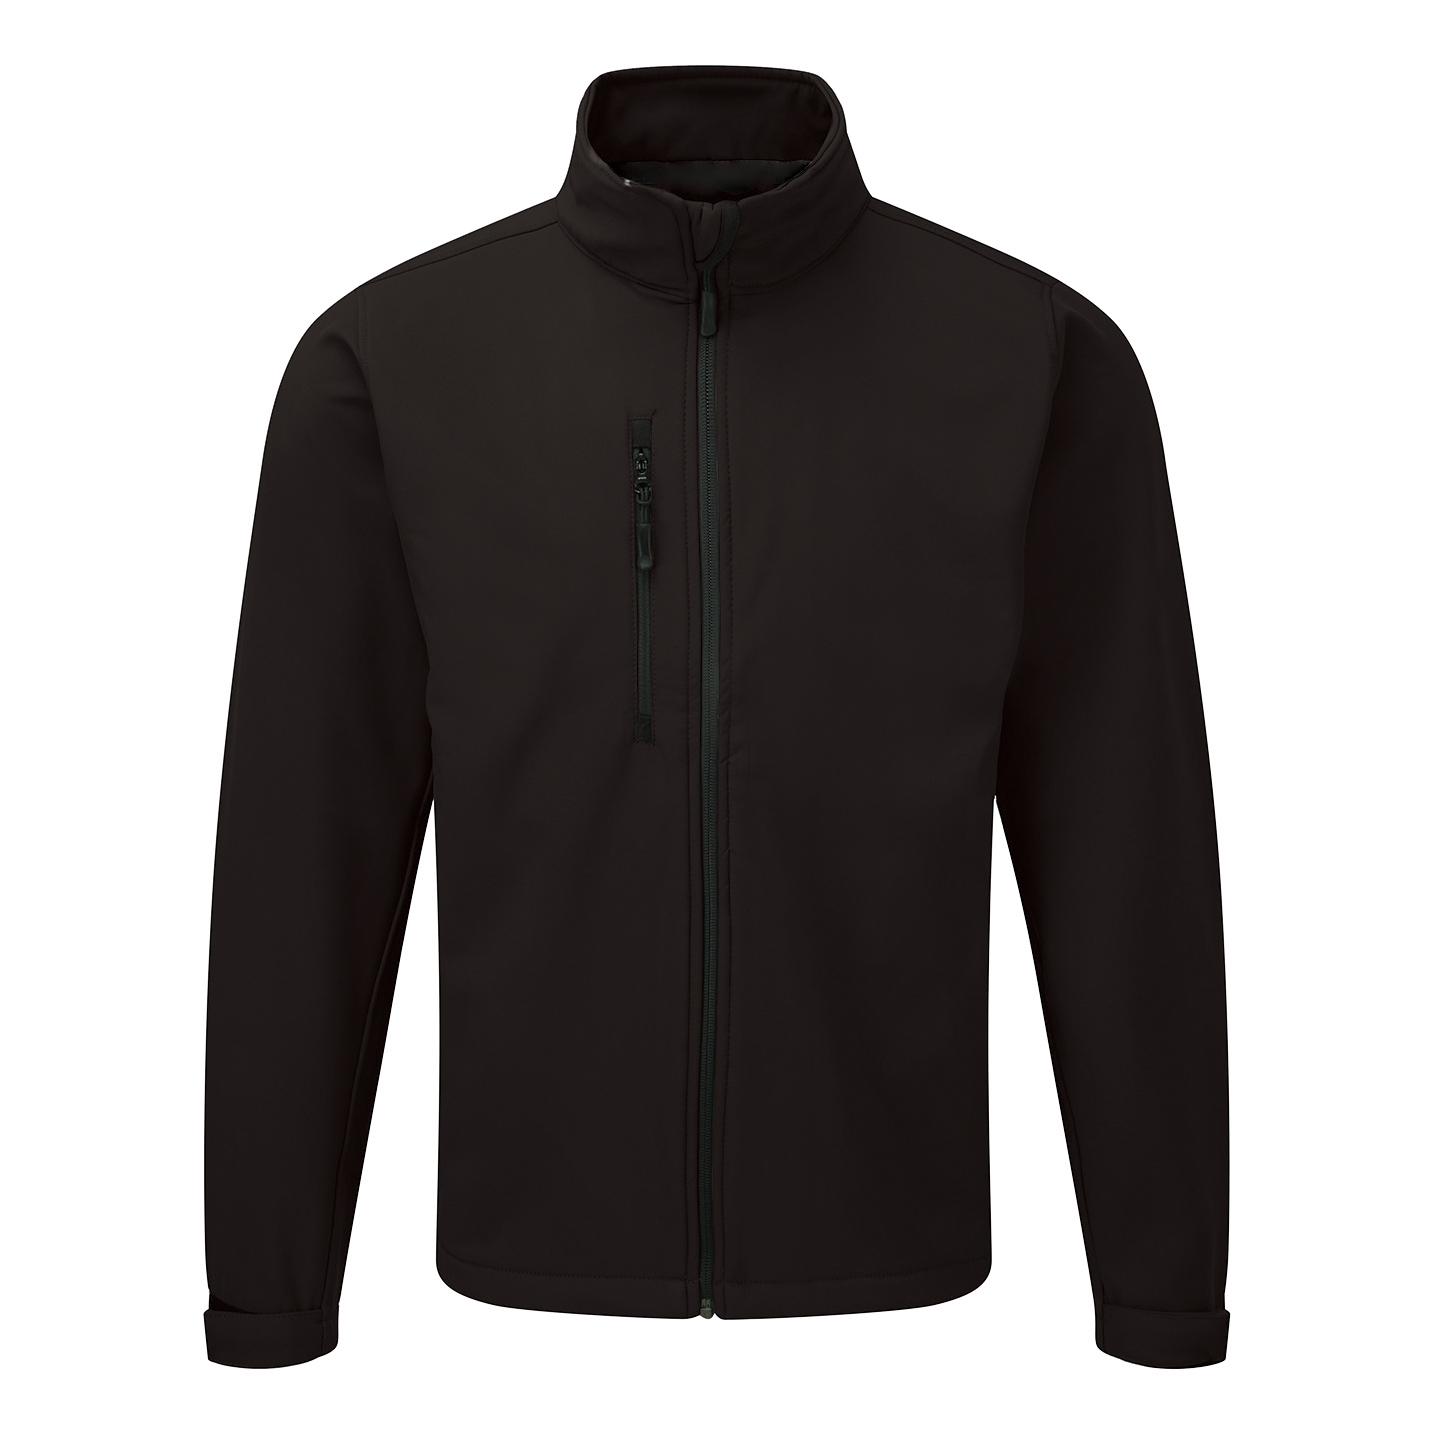 Business Soft Shell Water Resistant Breathable Jacket 320gsm Lrg Size Large Black